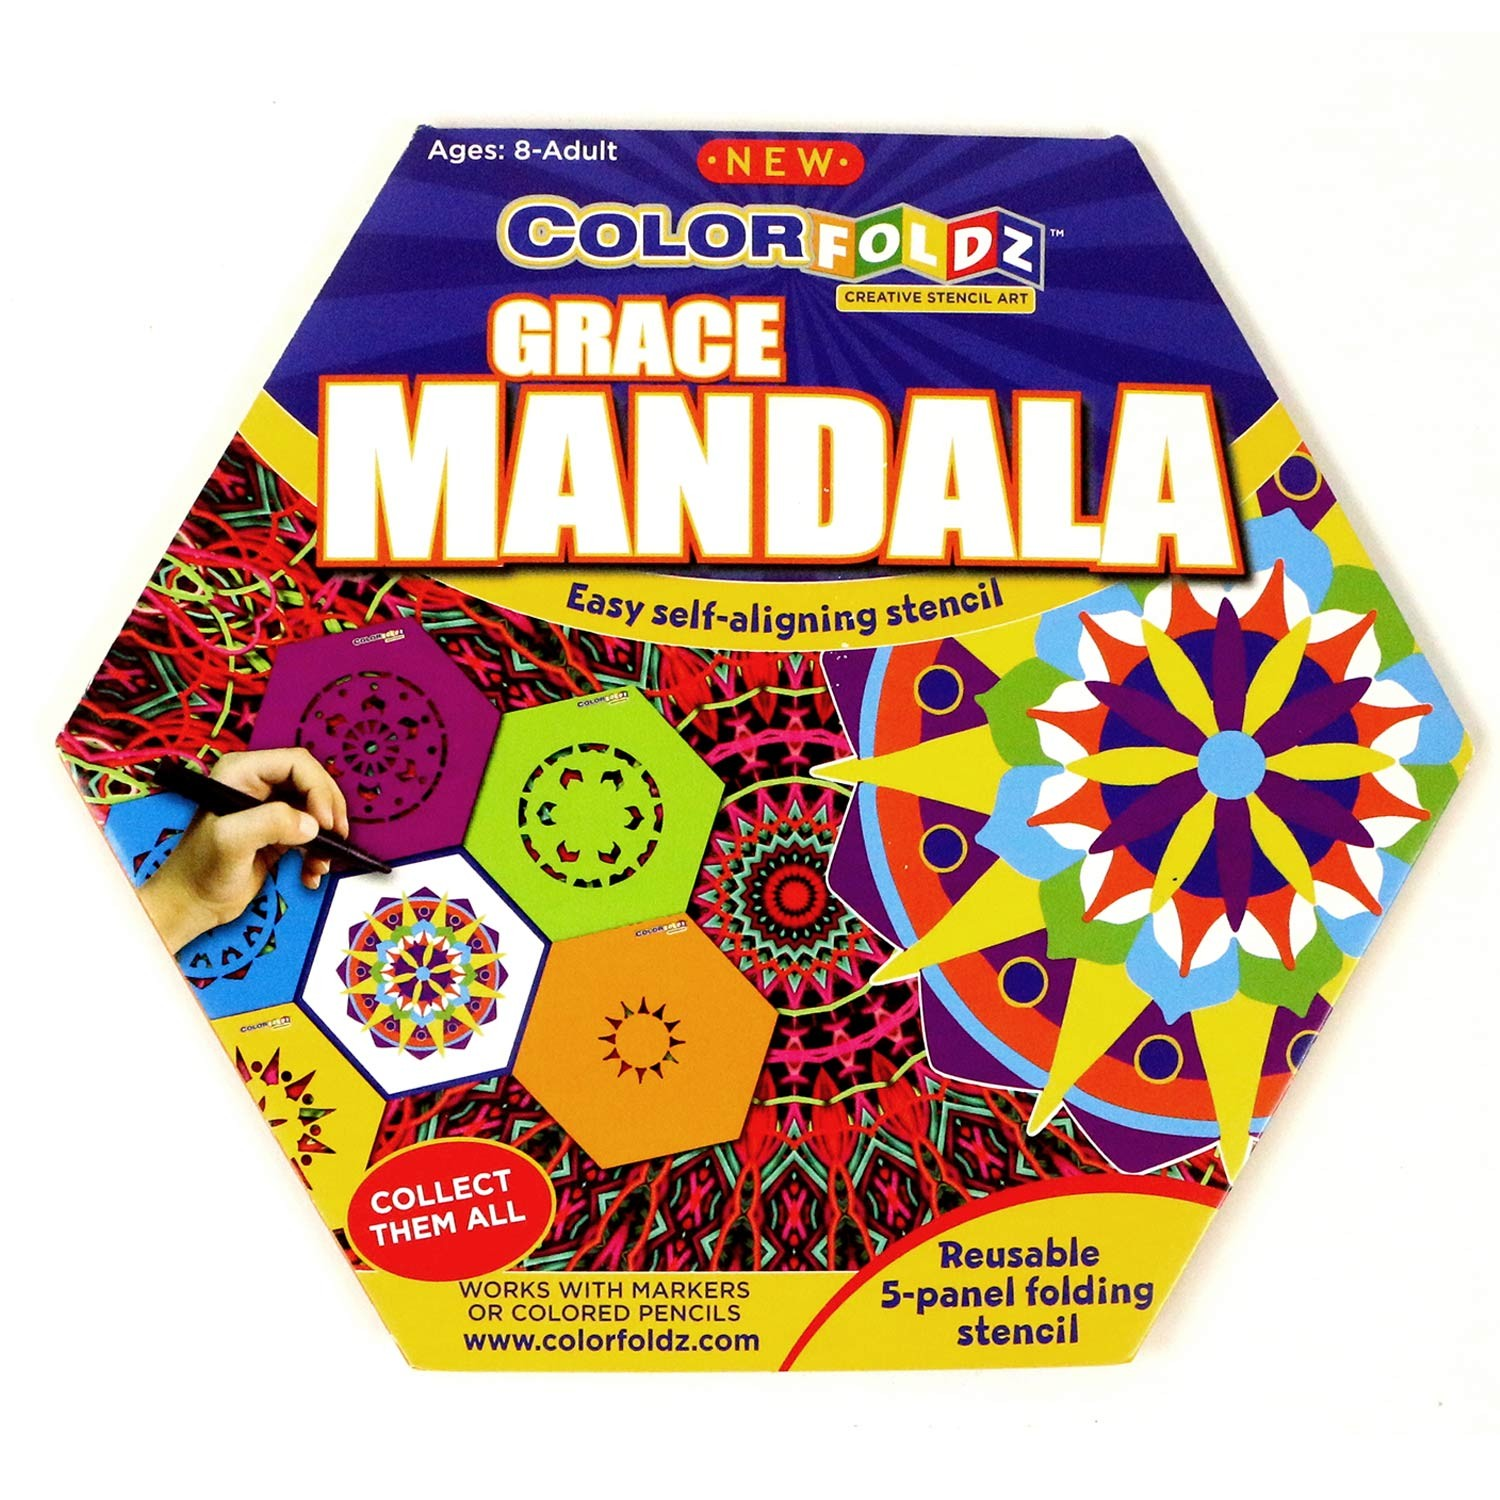 Grace Mandala ColorFoldz Self-Aligning Stencil